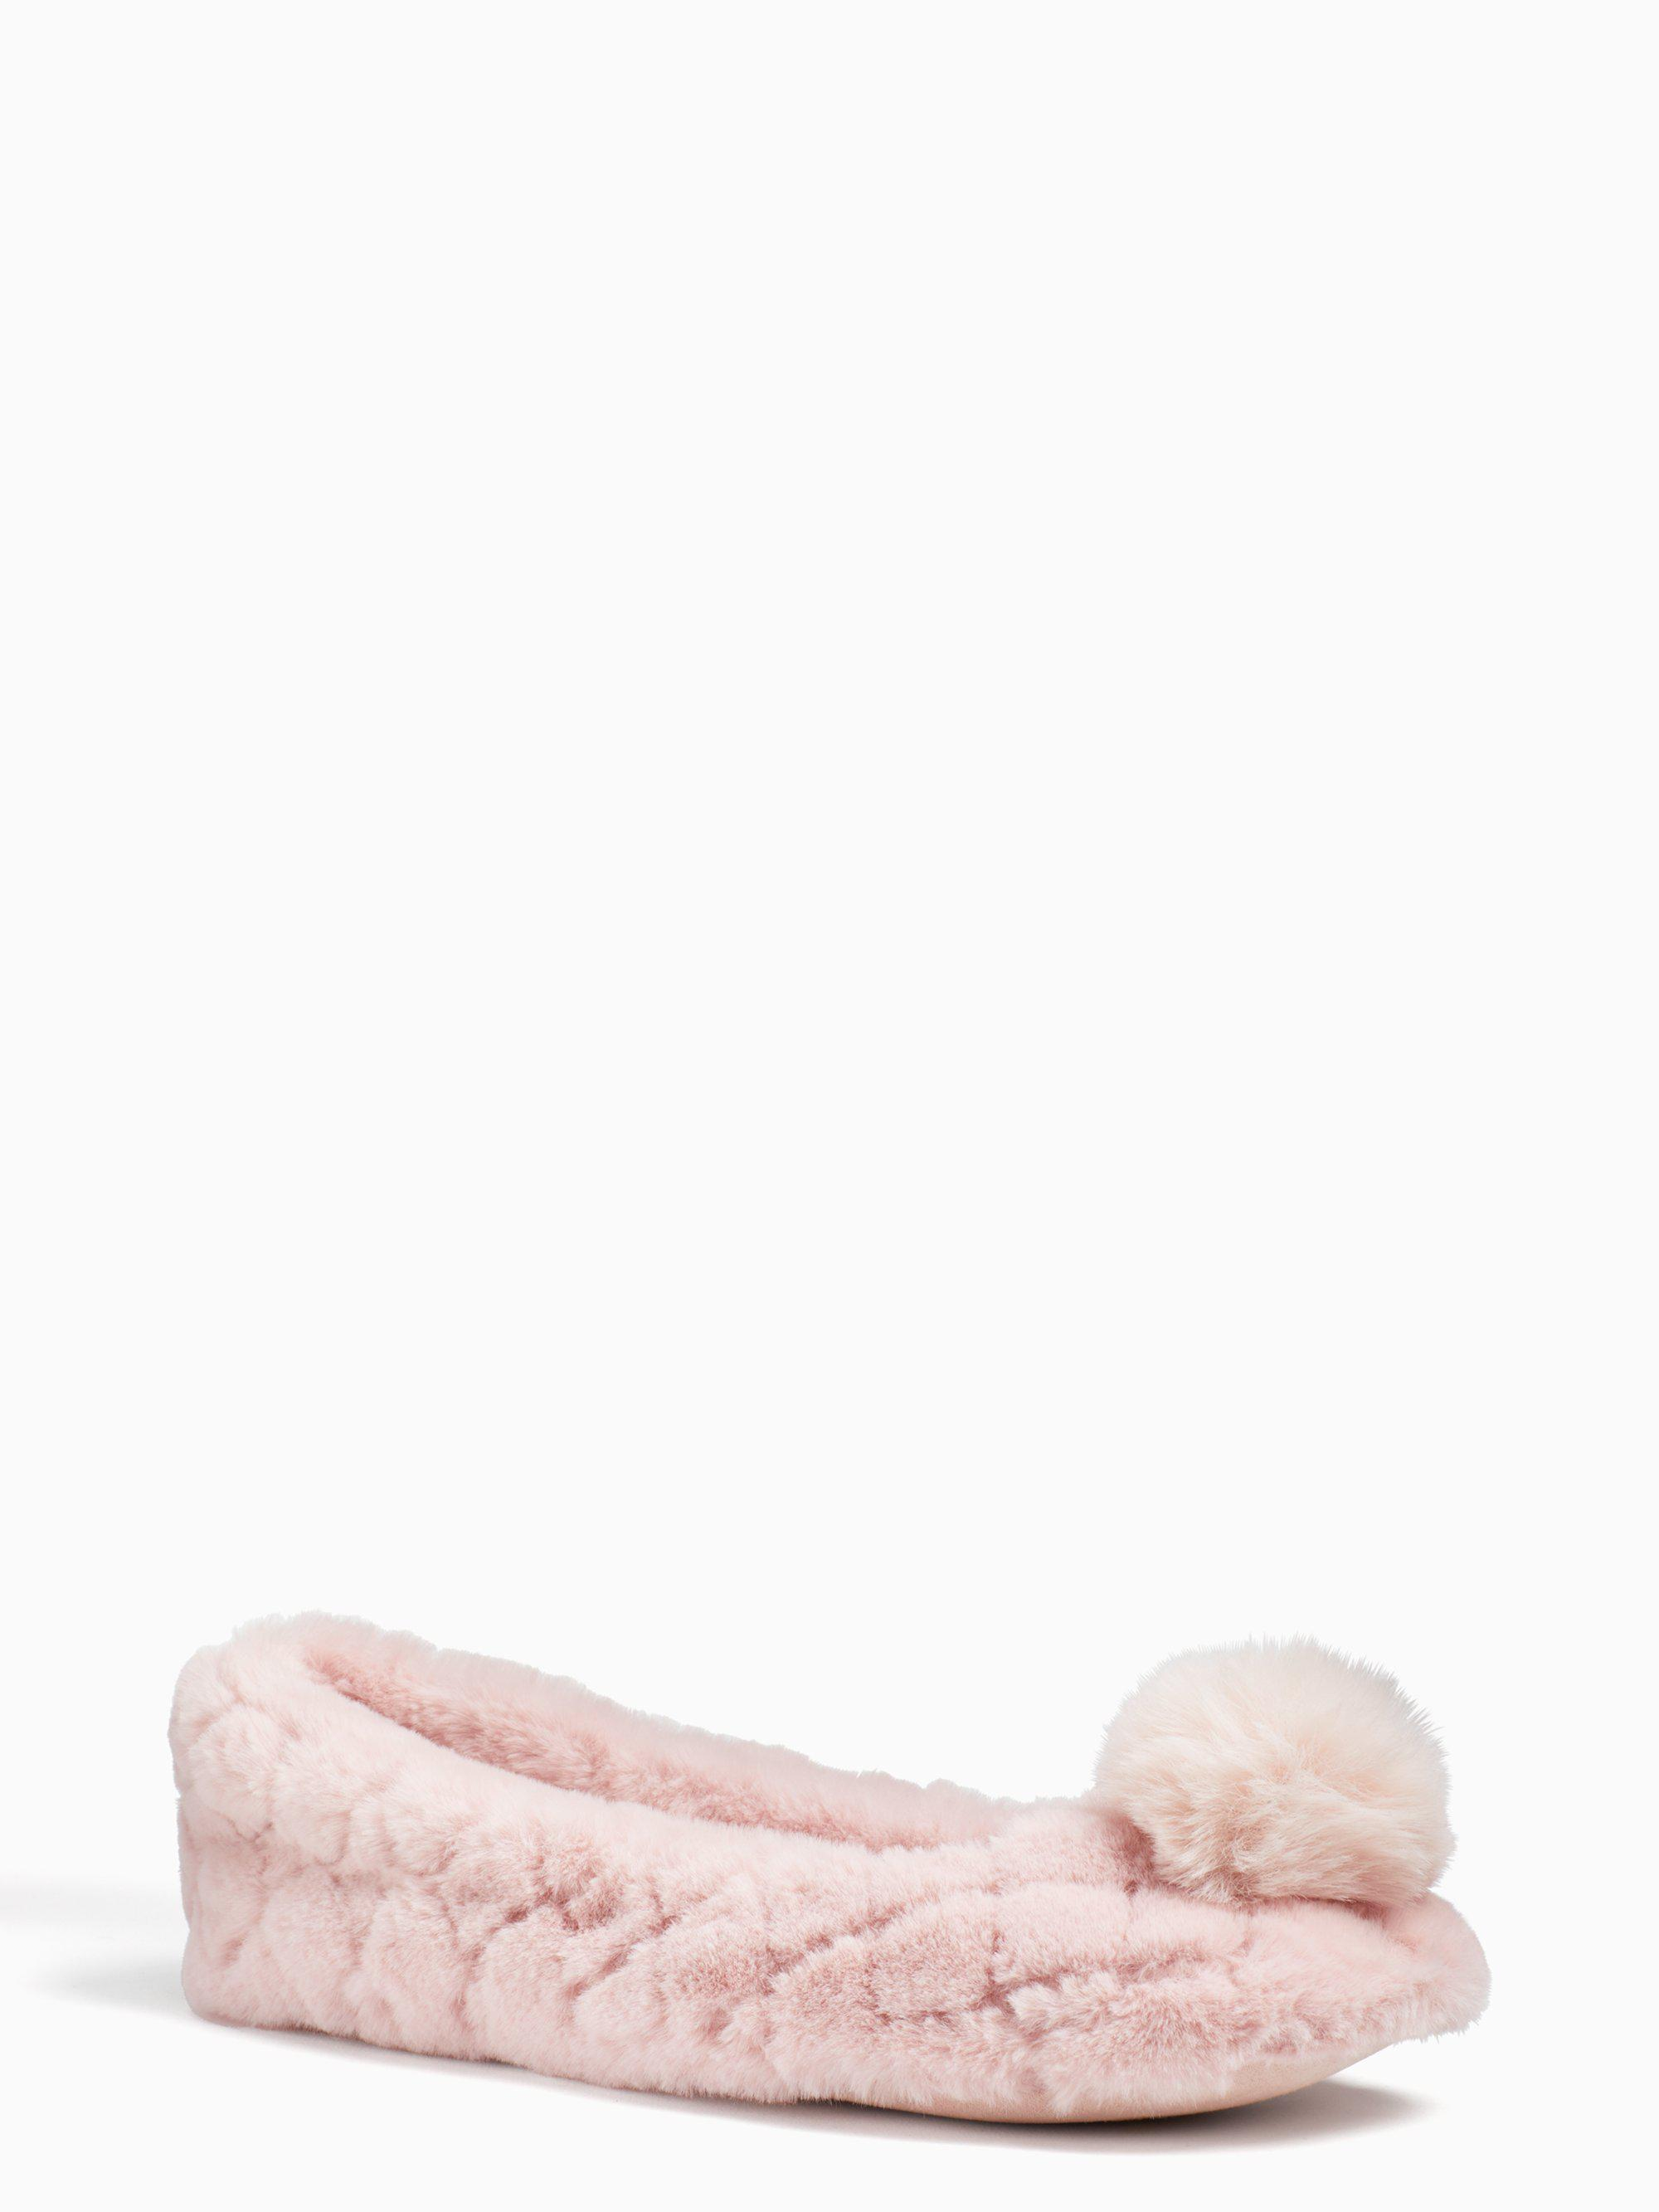 d26909946636 Kate Spade. Women s Pink Sabilla Slippers.  68  48 From kate spade new york.  Free shipping ...